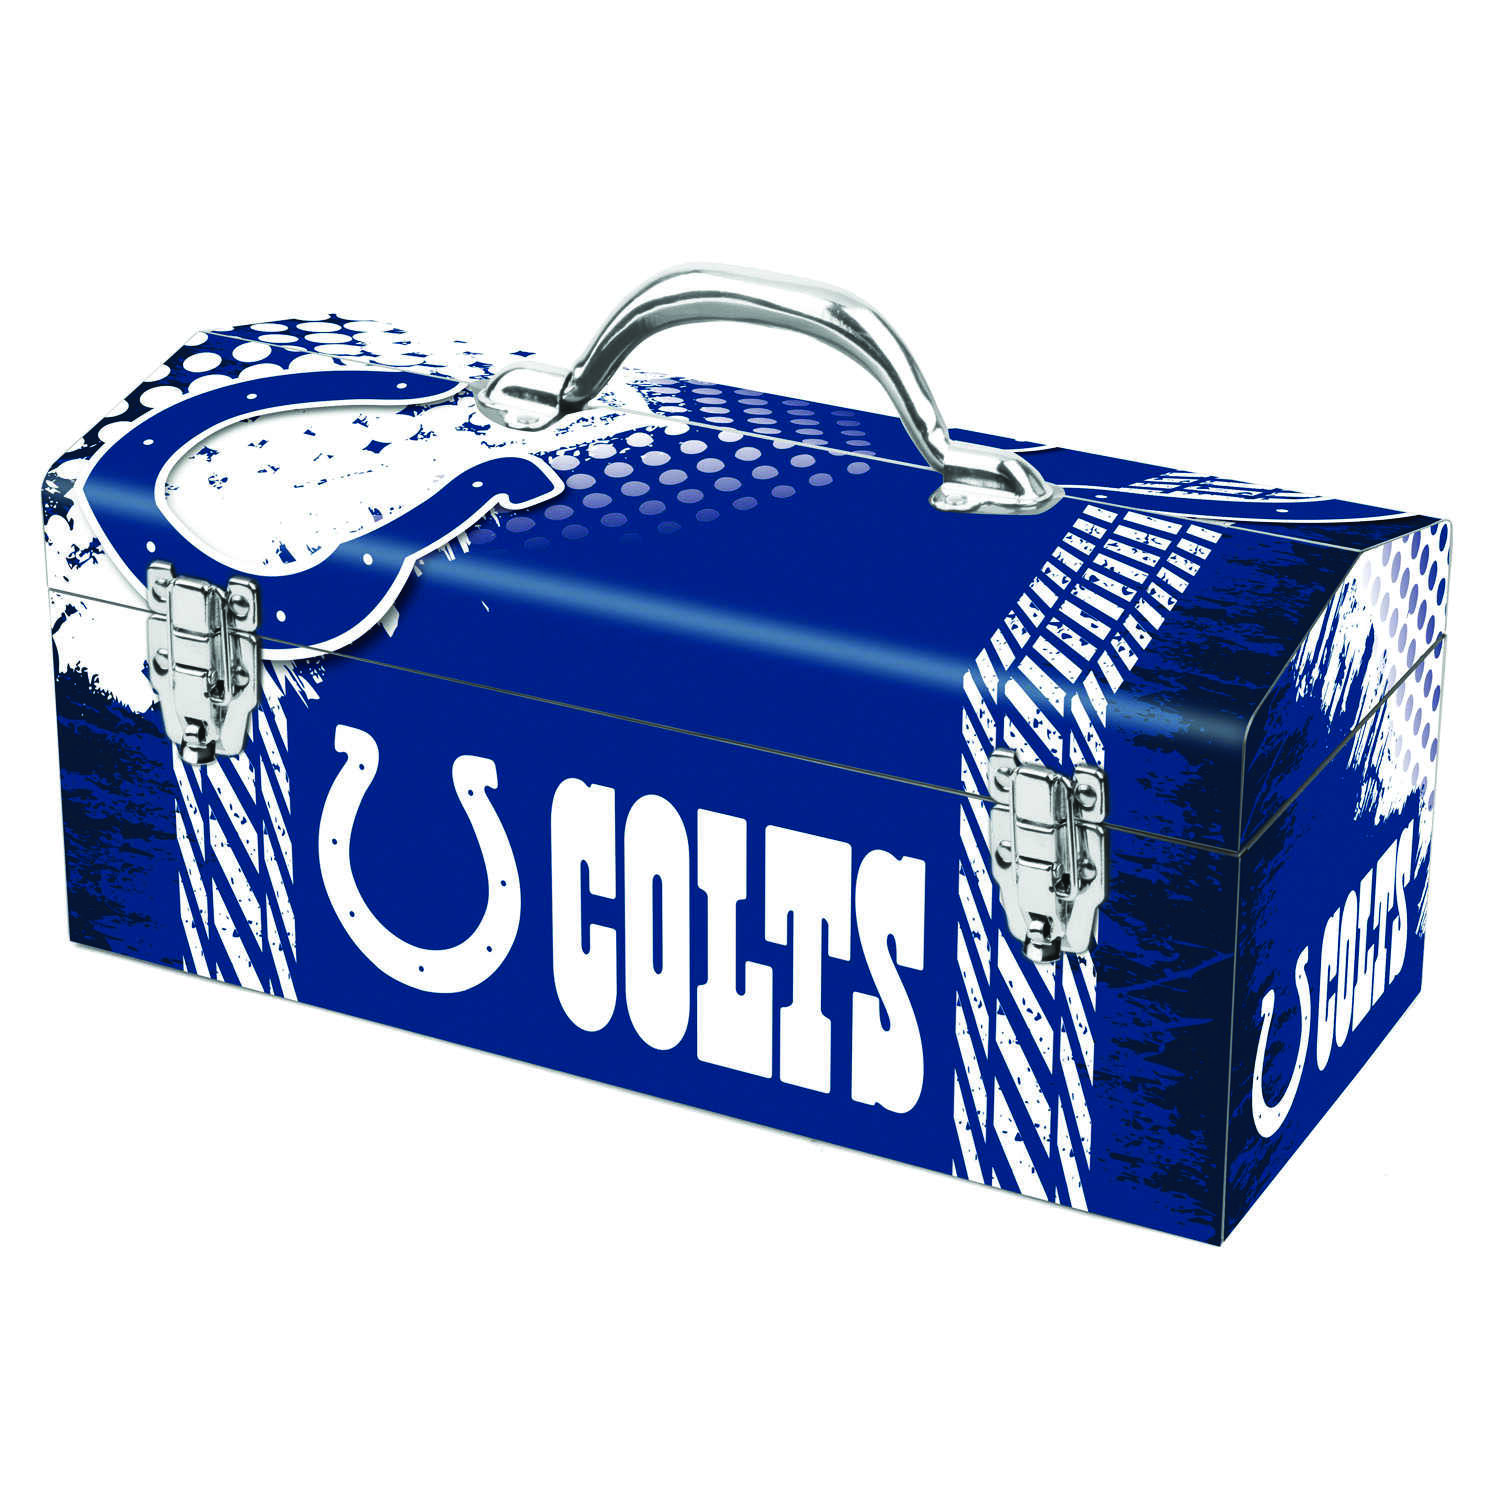 Sainty International  16.25 in. Steel  Indianapolis Colts  Art Deco Tool Box  7.1 in. W x 7.75 in. H